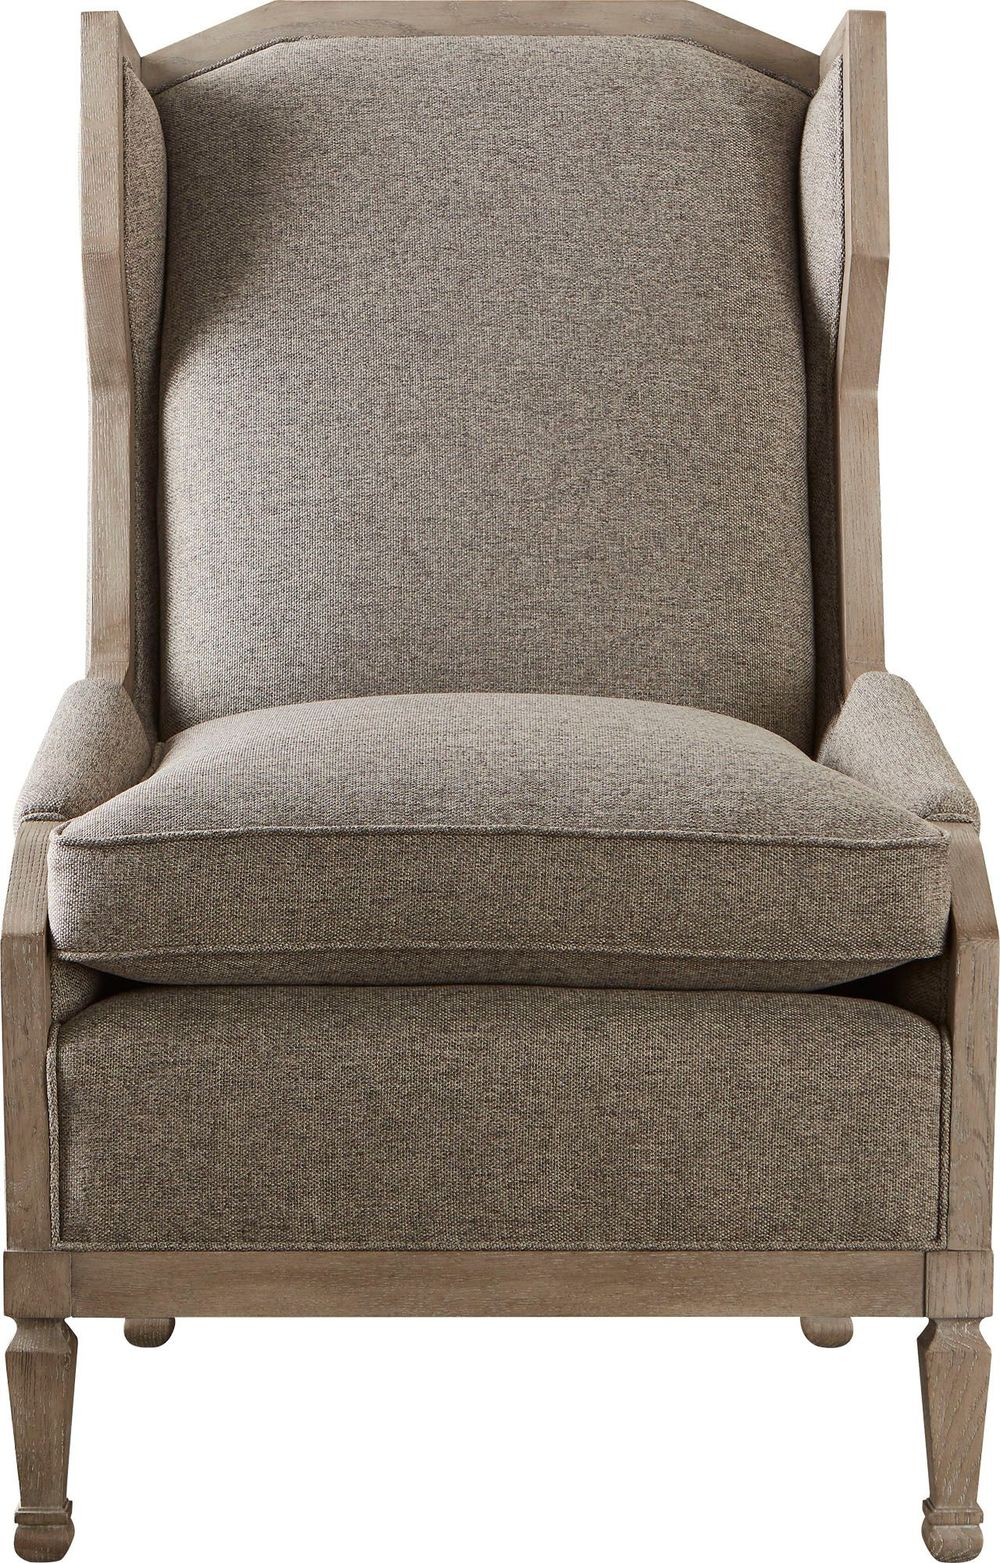 Baker Furniture - Darcy Wingback Chair